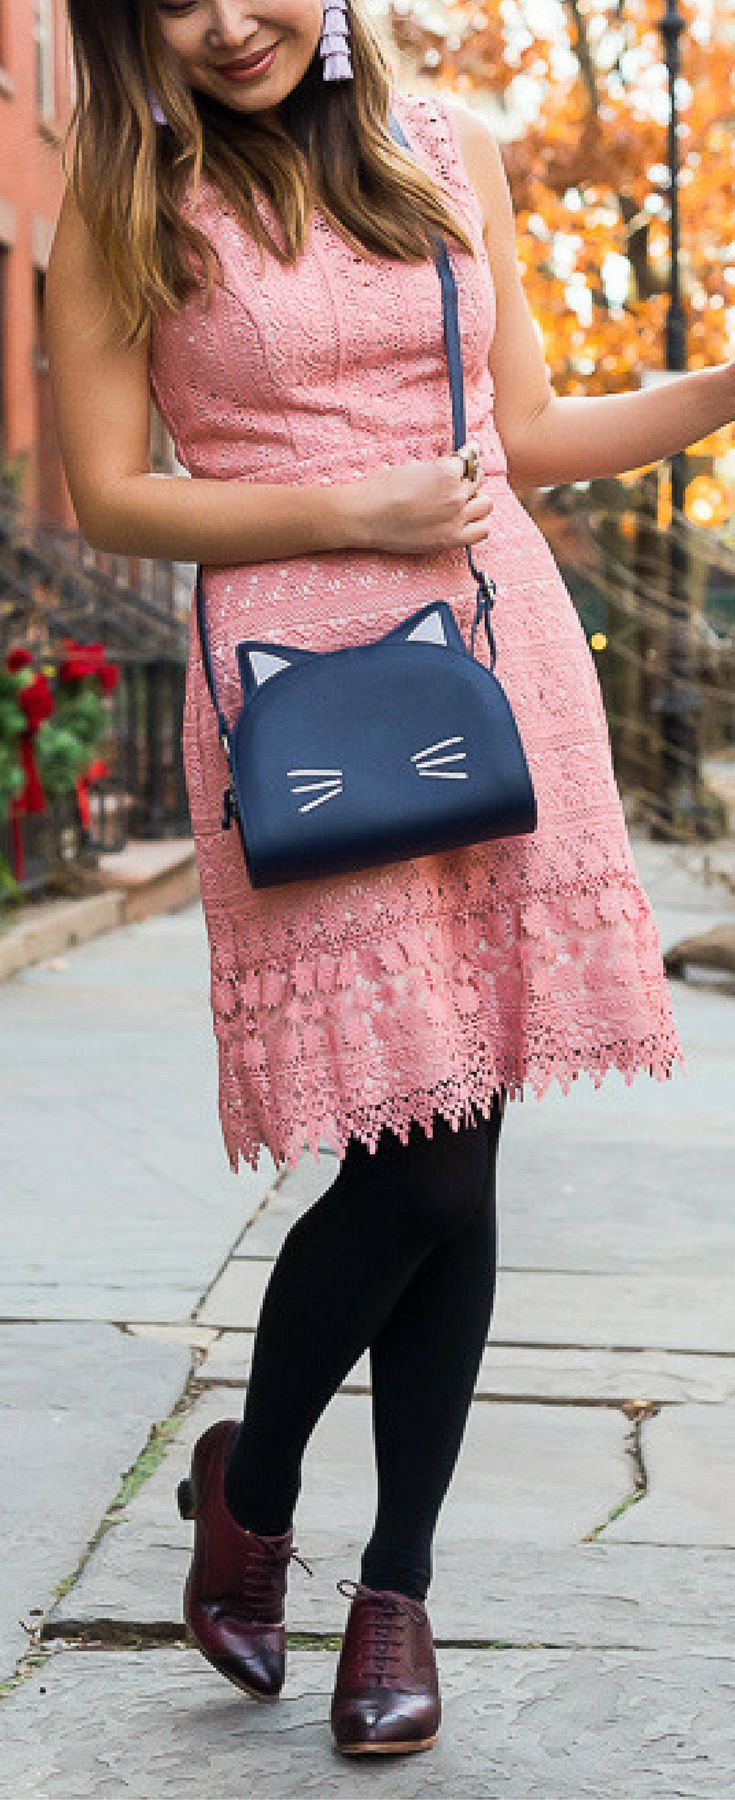 Cat bag fashion, cath kidston bag outfit, pink dress outfit. Shop the look on www.layersofchic.com